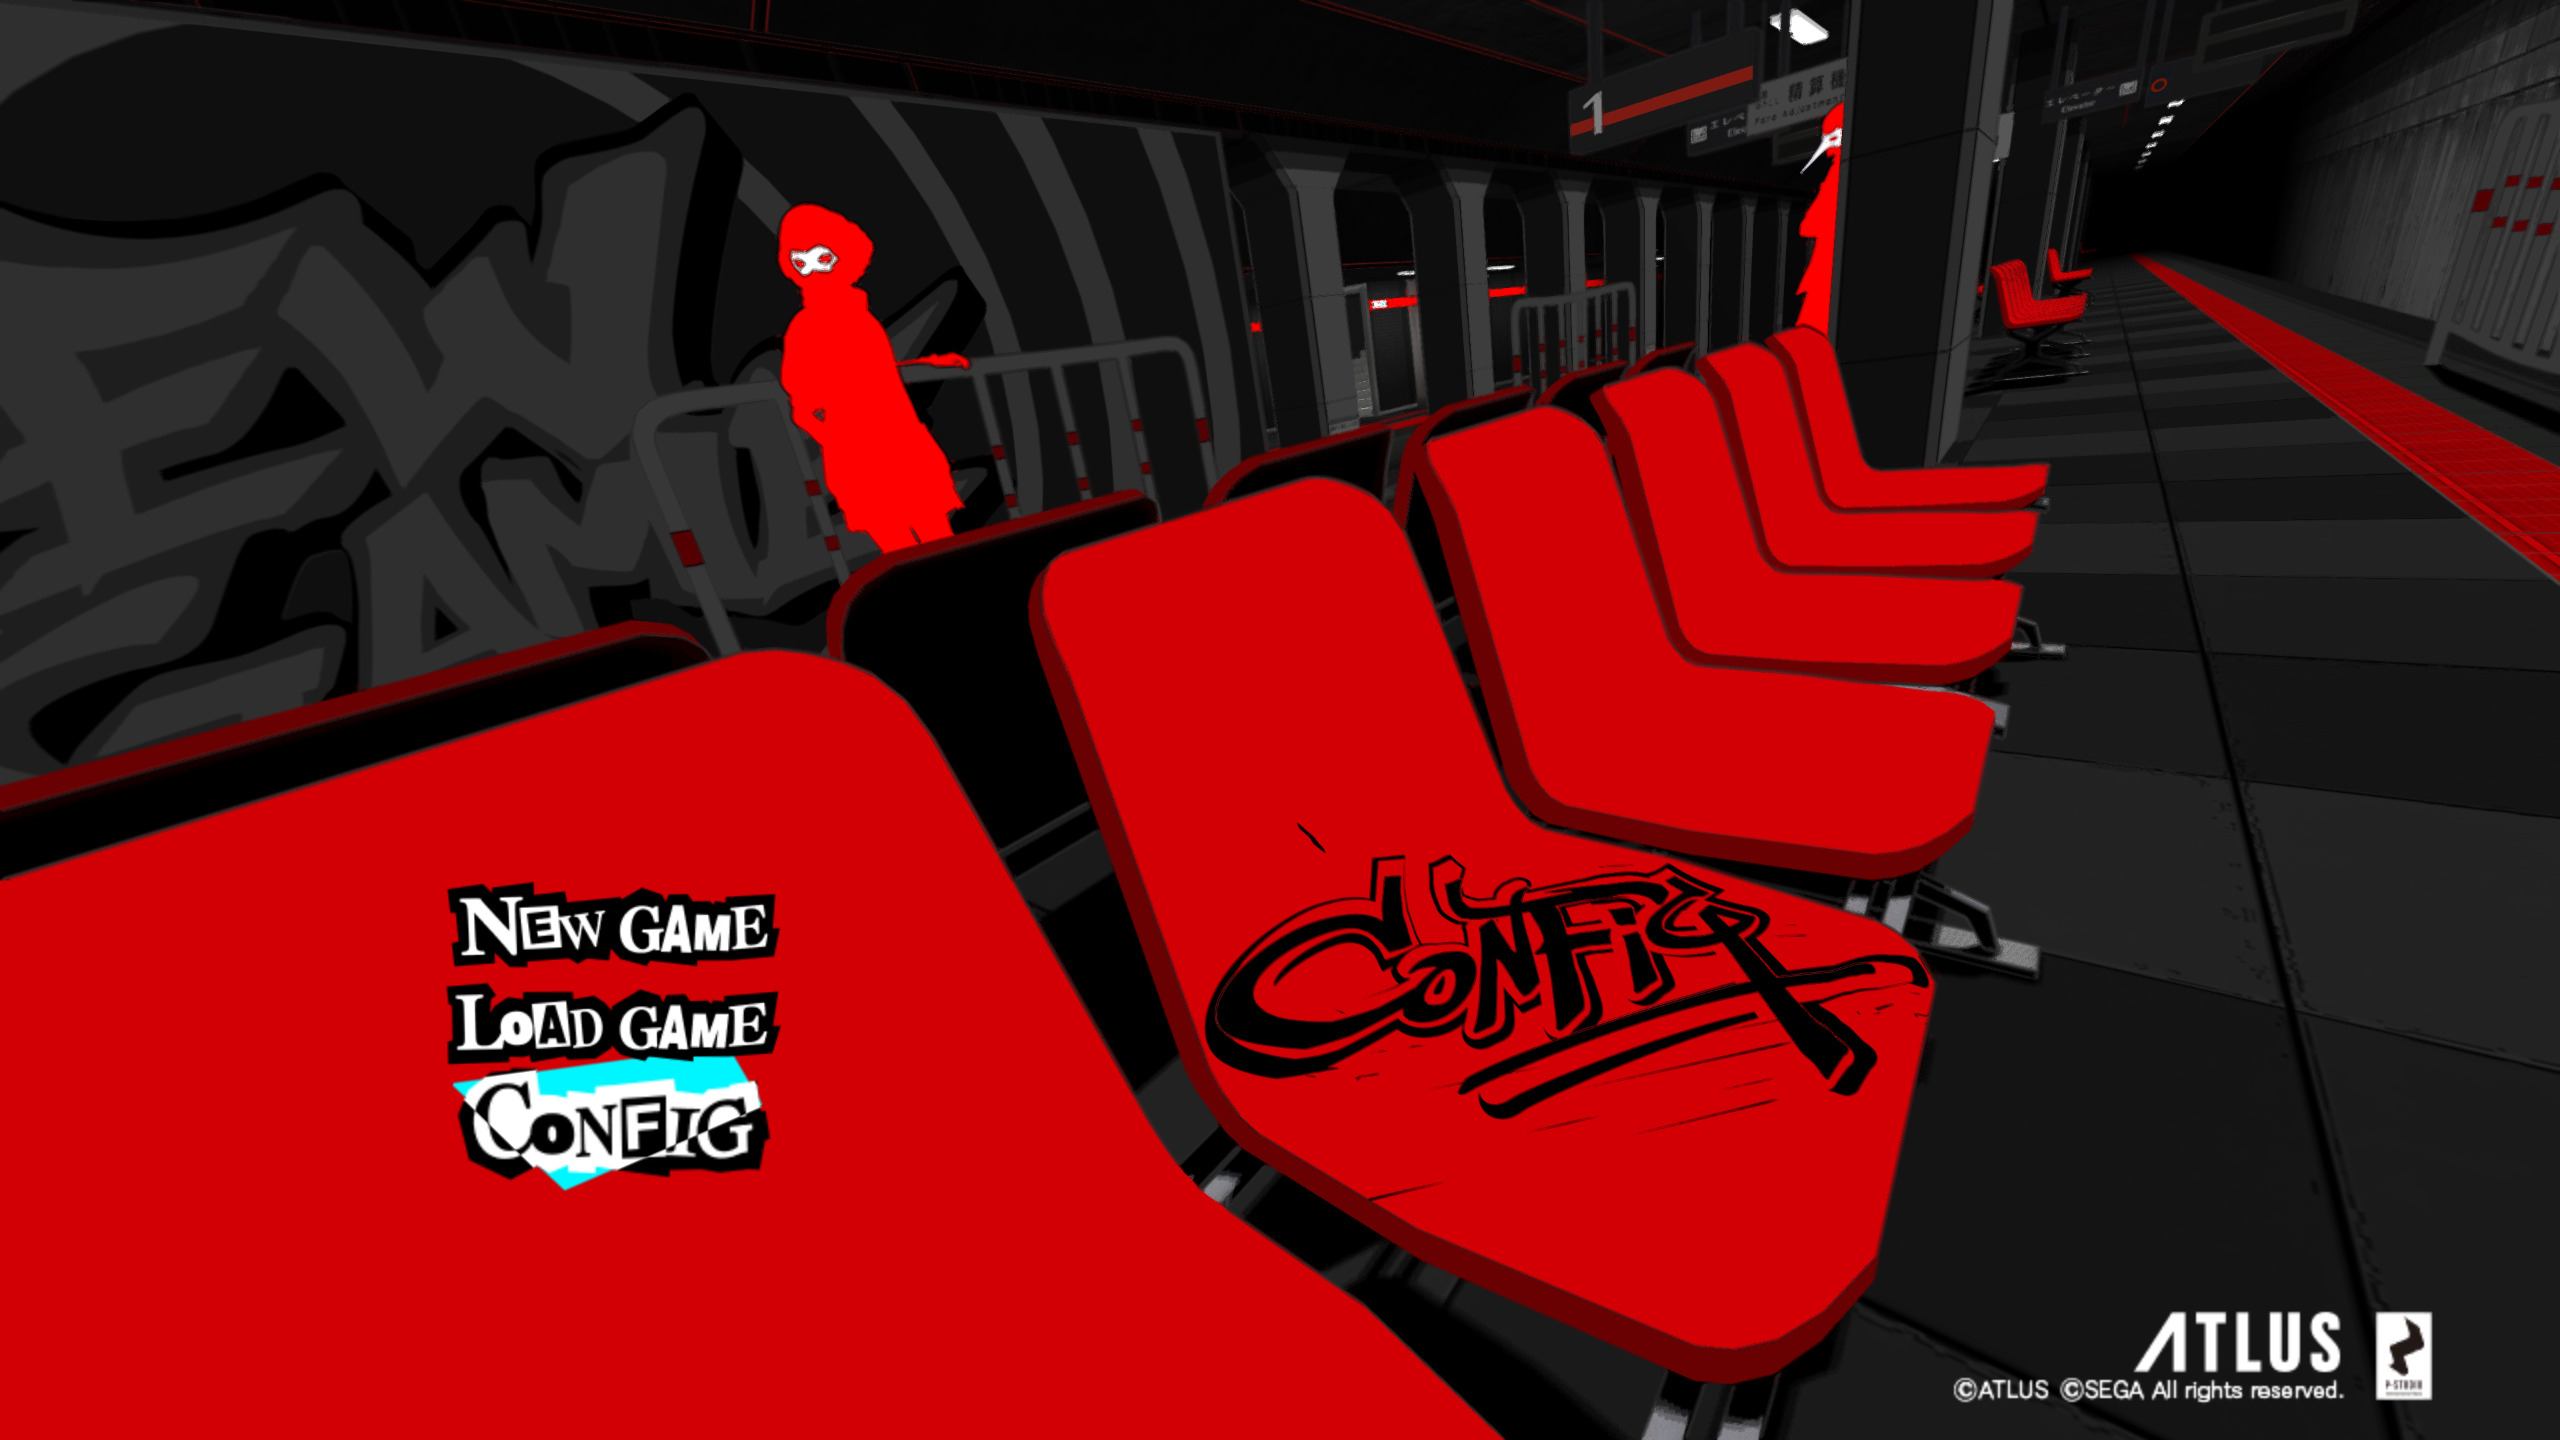 Persona 5 (Vulkan): native fp16 has graphical glitches on